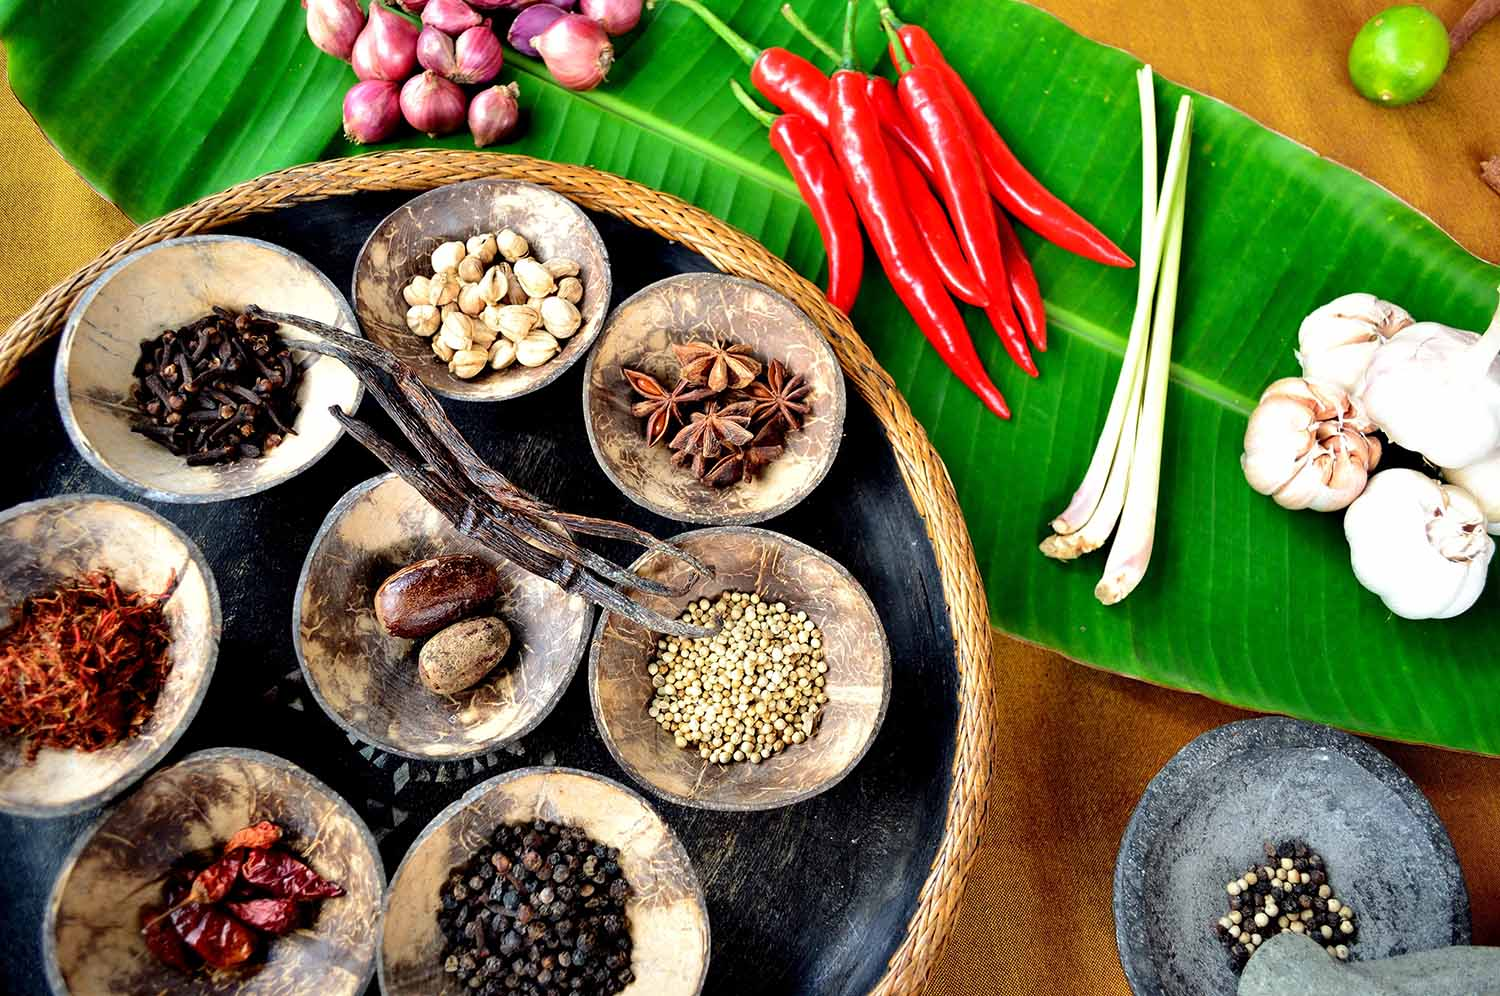 Indonesia spices